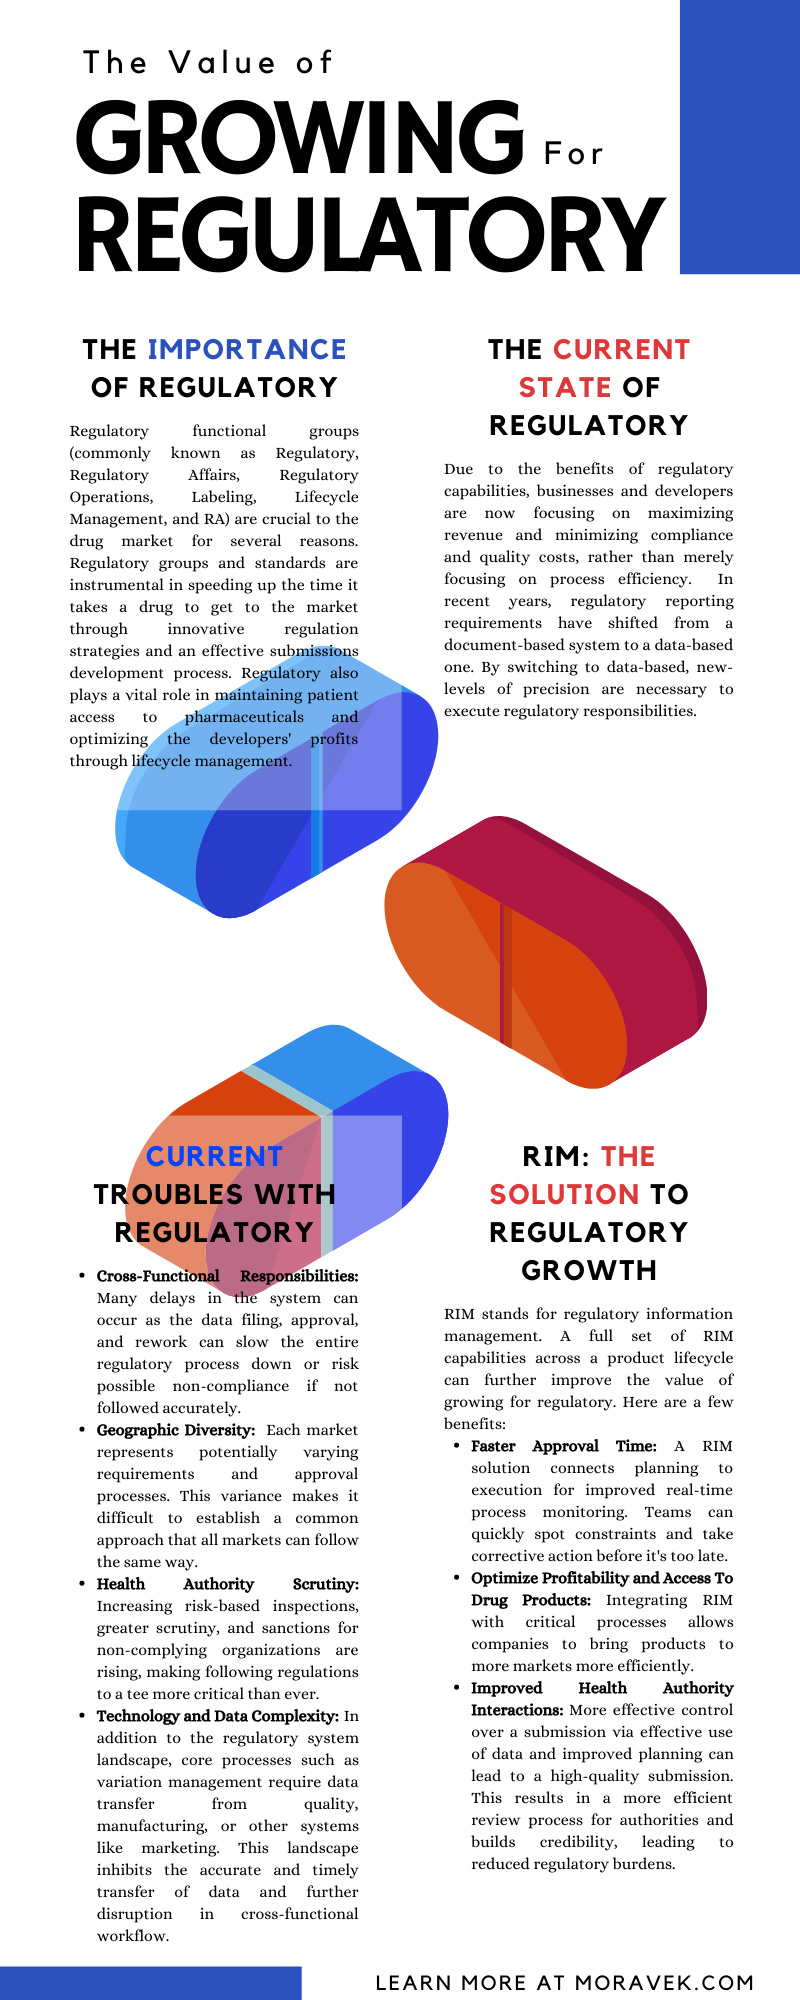 The Value of Growing for Regulatory